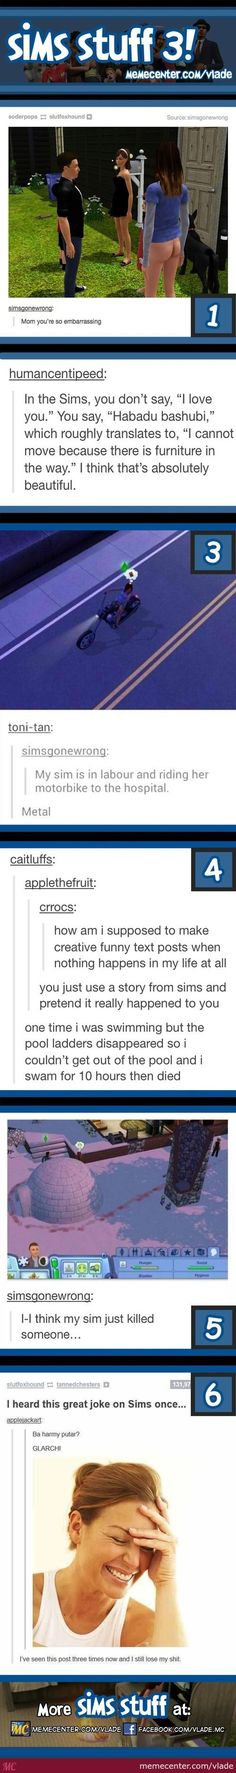 Omg I'm dying, I'll always love this game!!: Laughing So Hard, Sims Xd, Funny Stuff, Sims Stuff, So Funny, Funny Sims, Sims 3, The Sims, Sims Humor